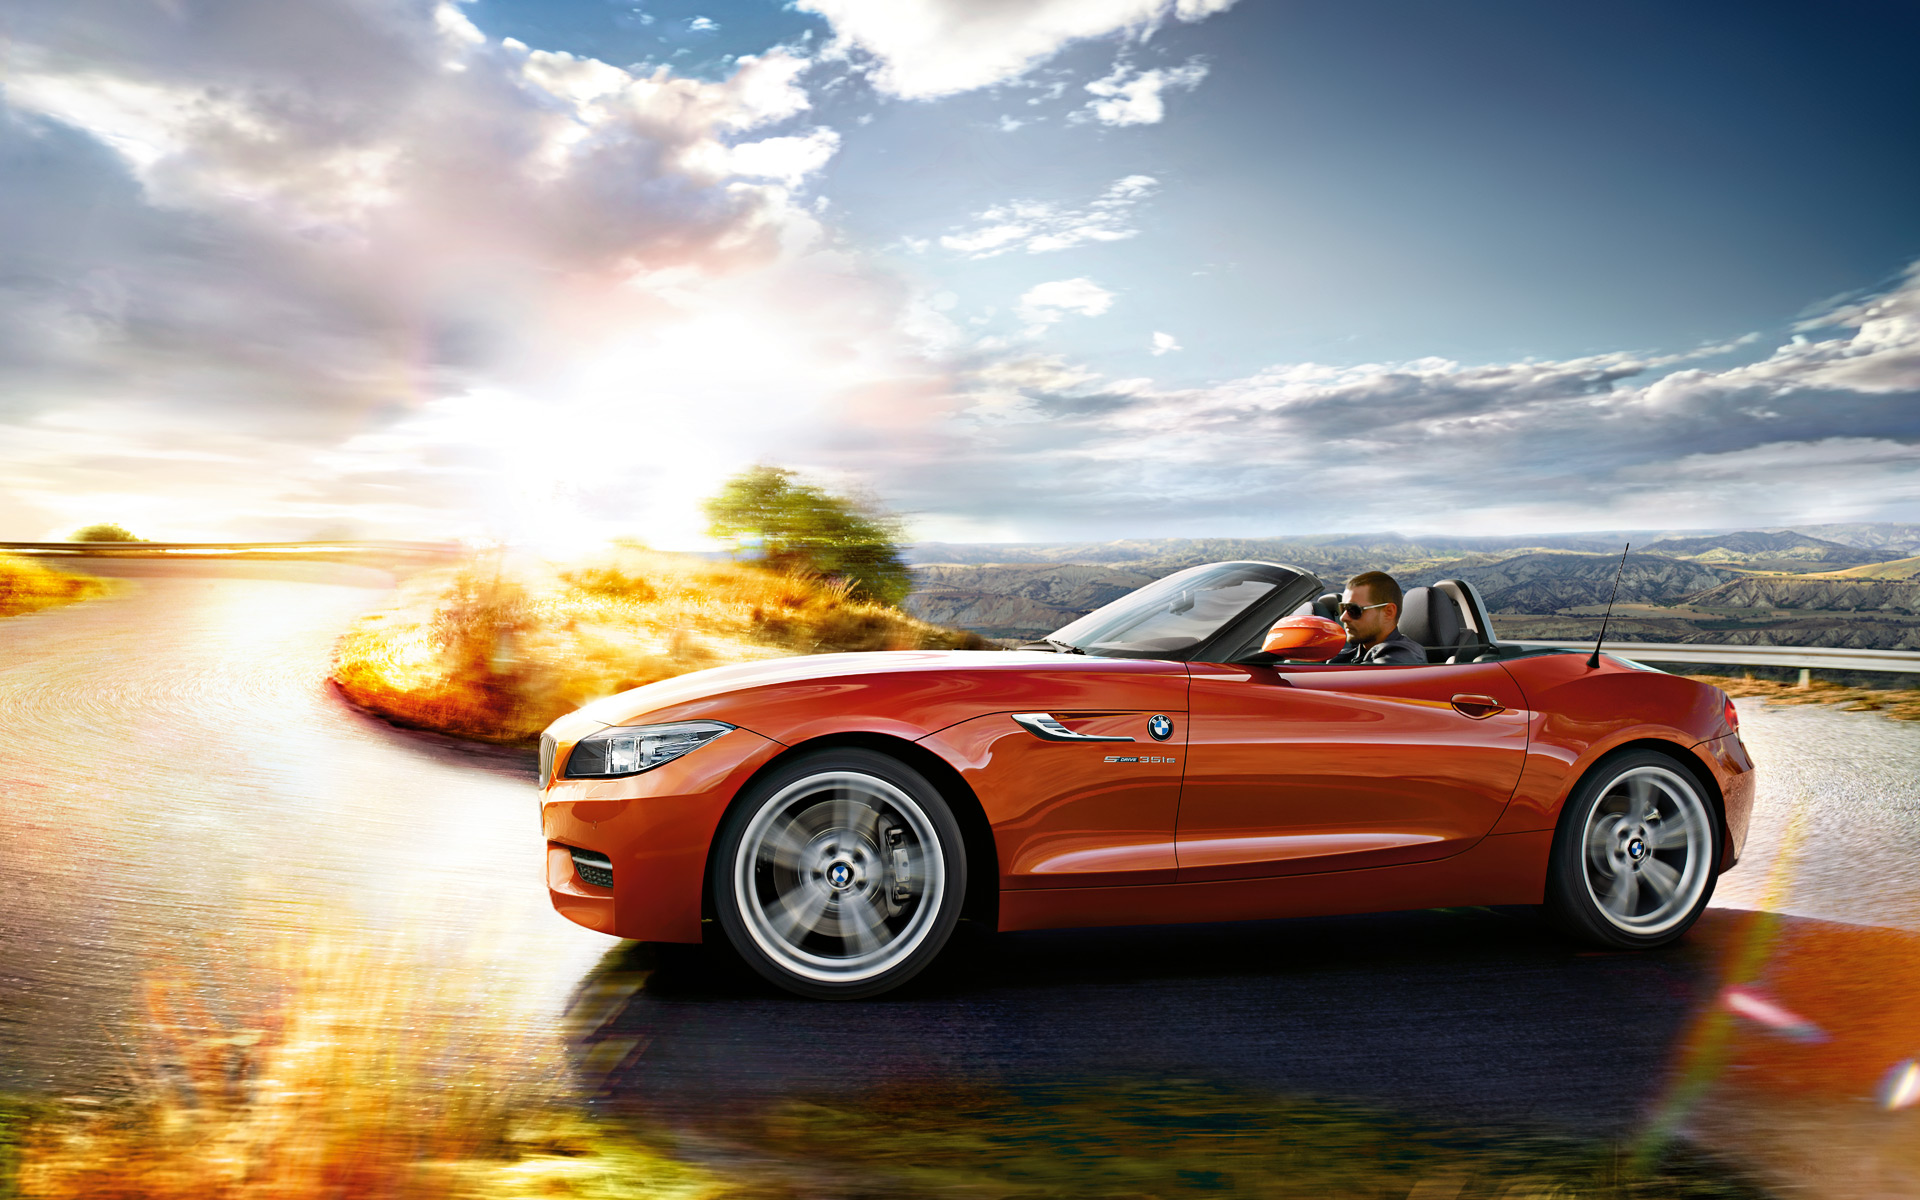 Bmw Z4 For Sale Lease Or Buy A Bmw Vista Bmw Fl